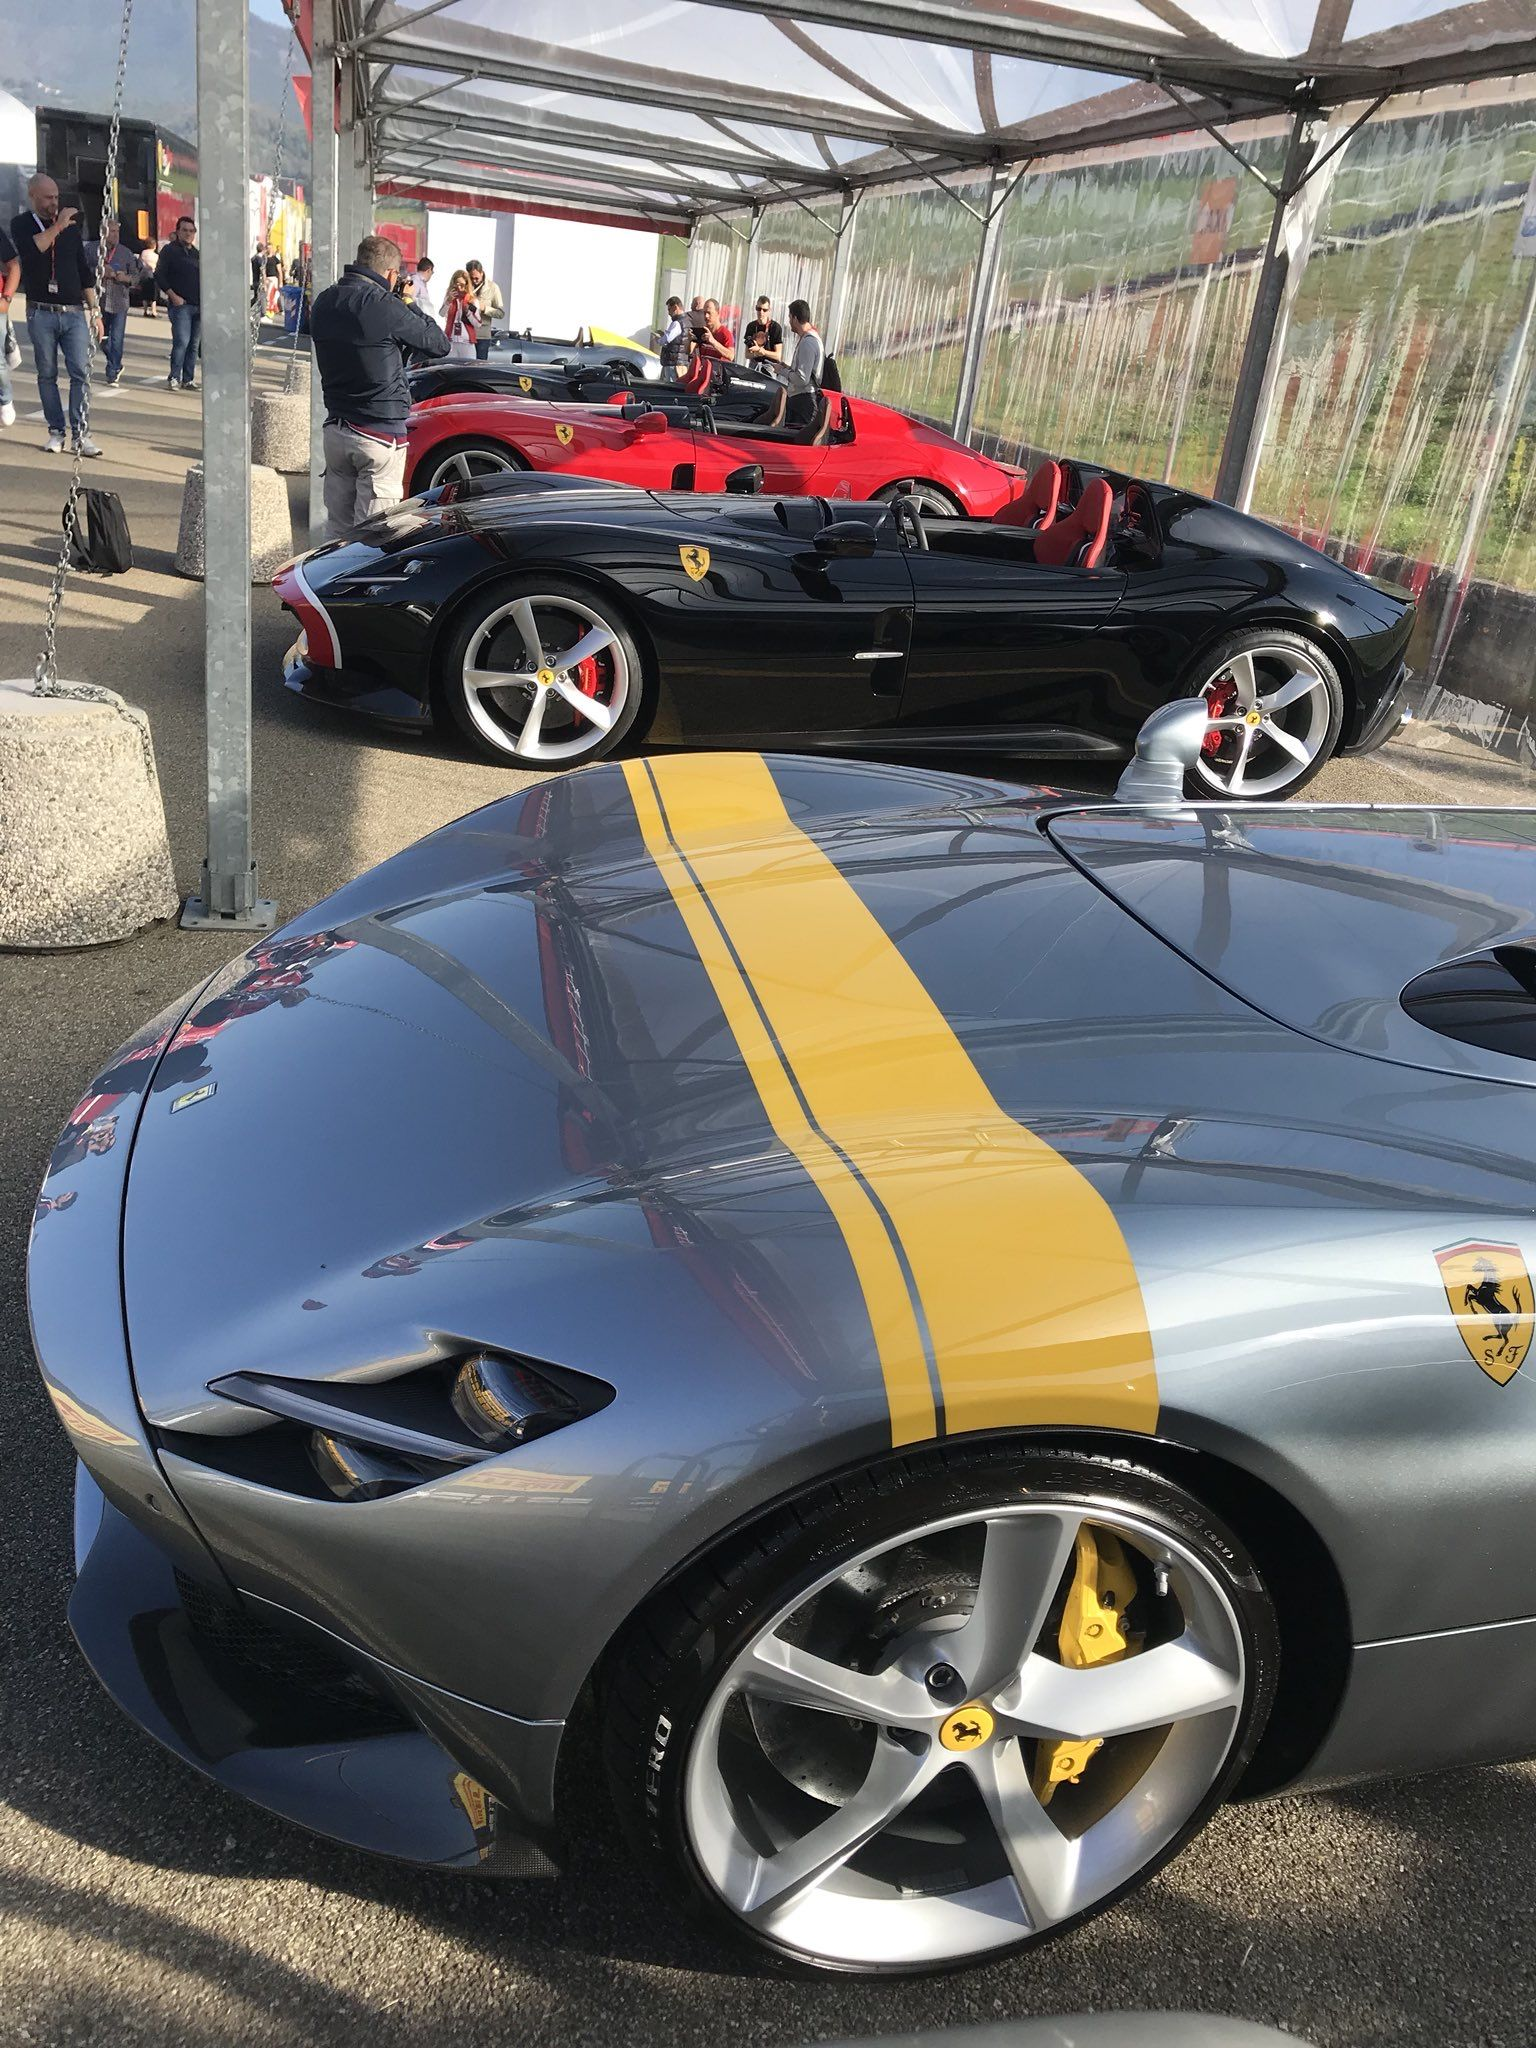 Too Much Of A Good Thing Karenable Super Cars European Cars Car Workshop